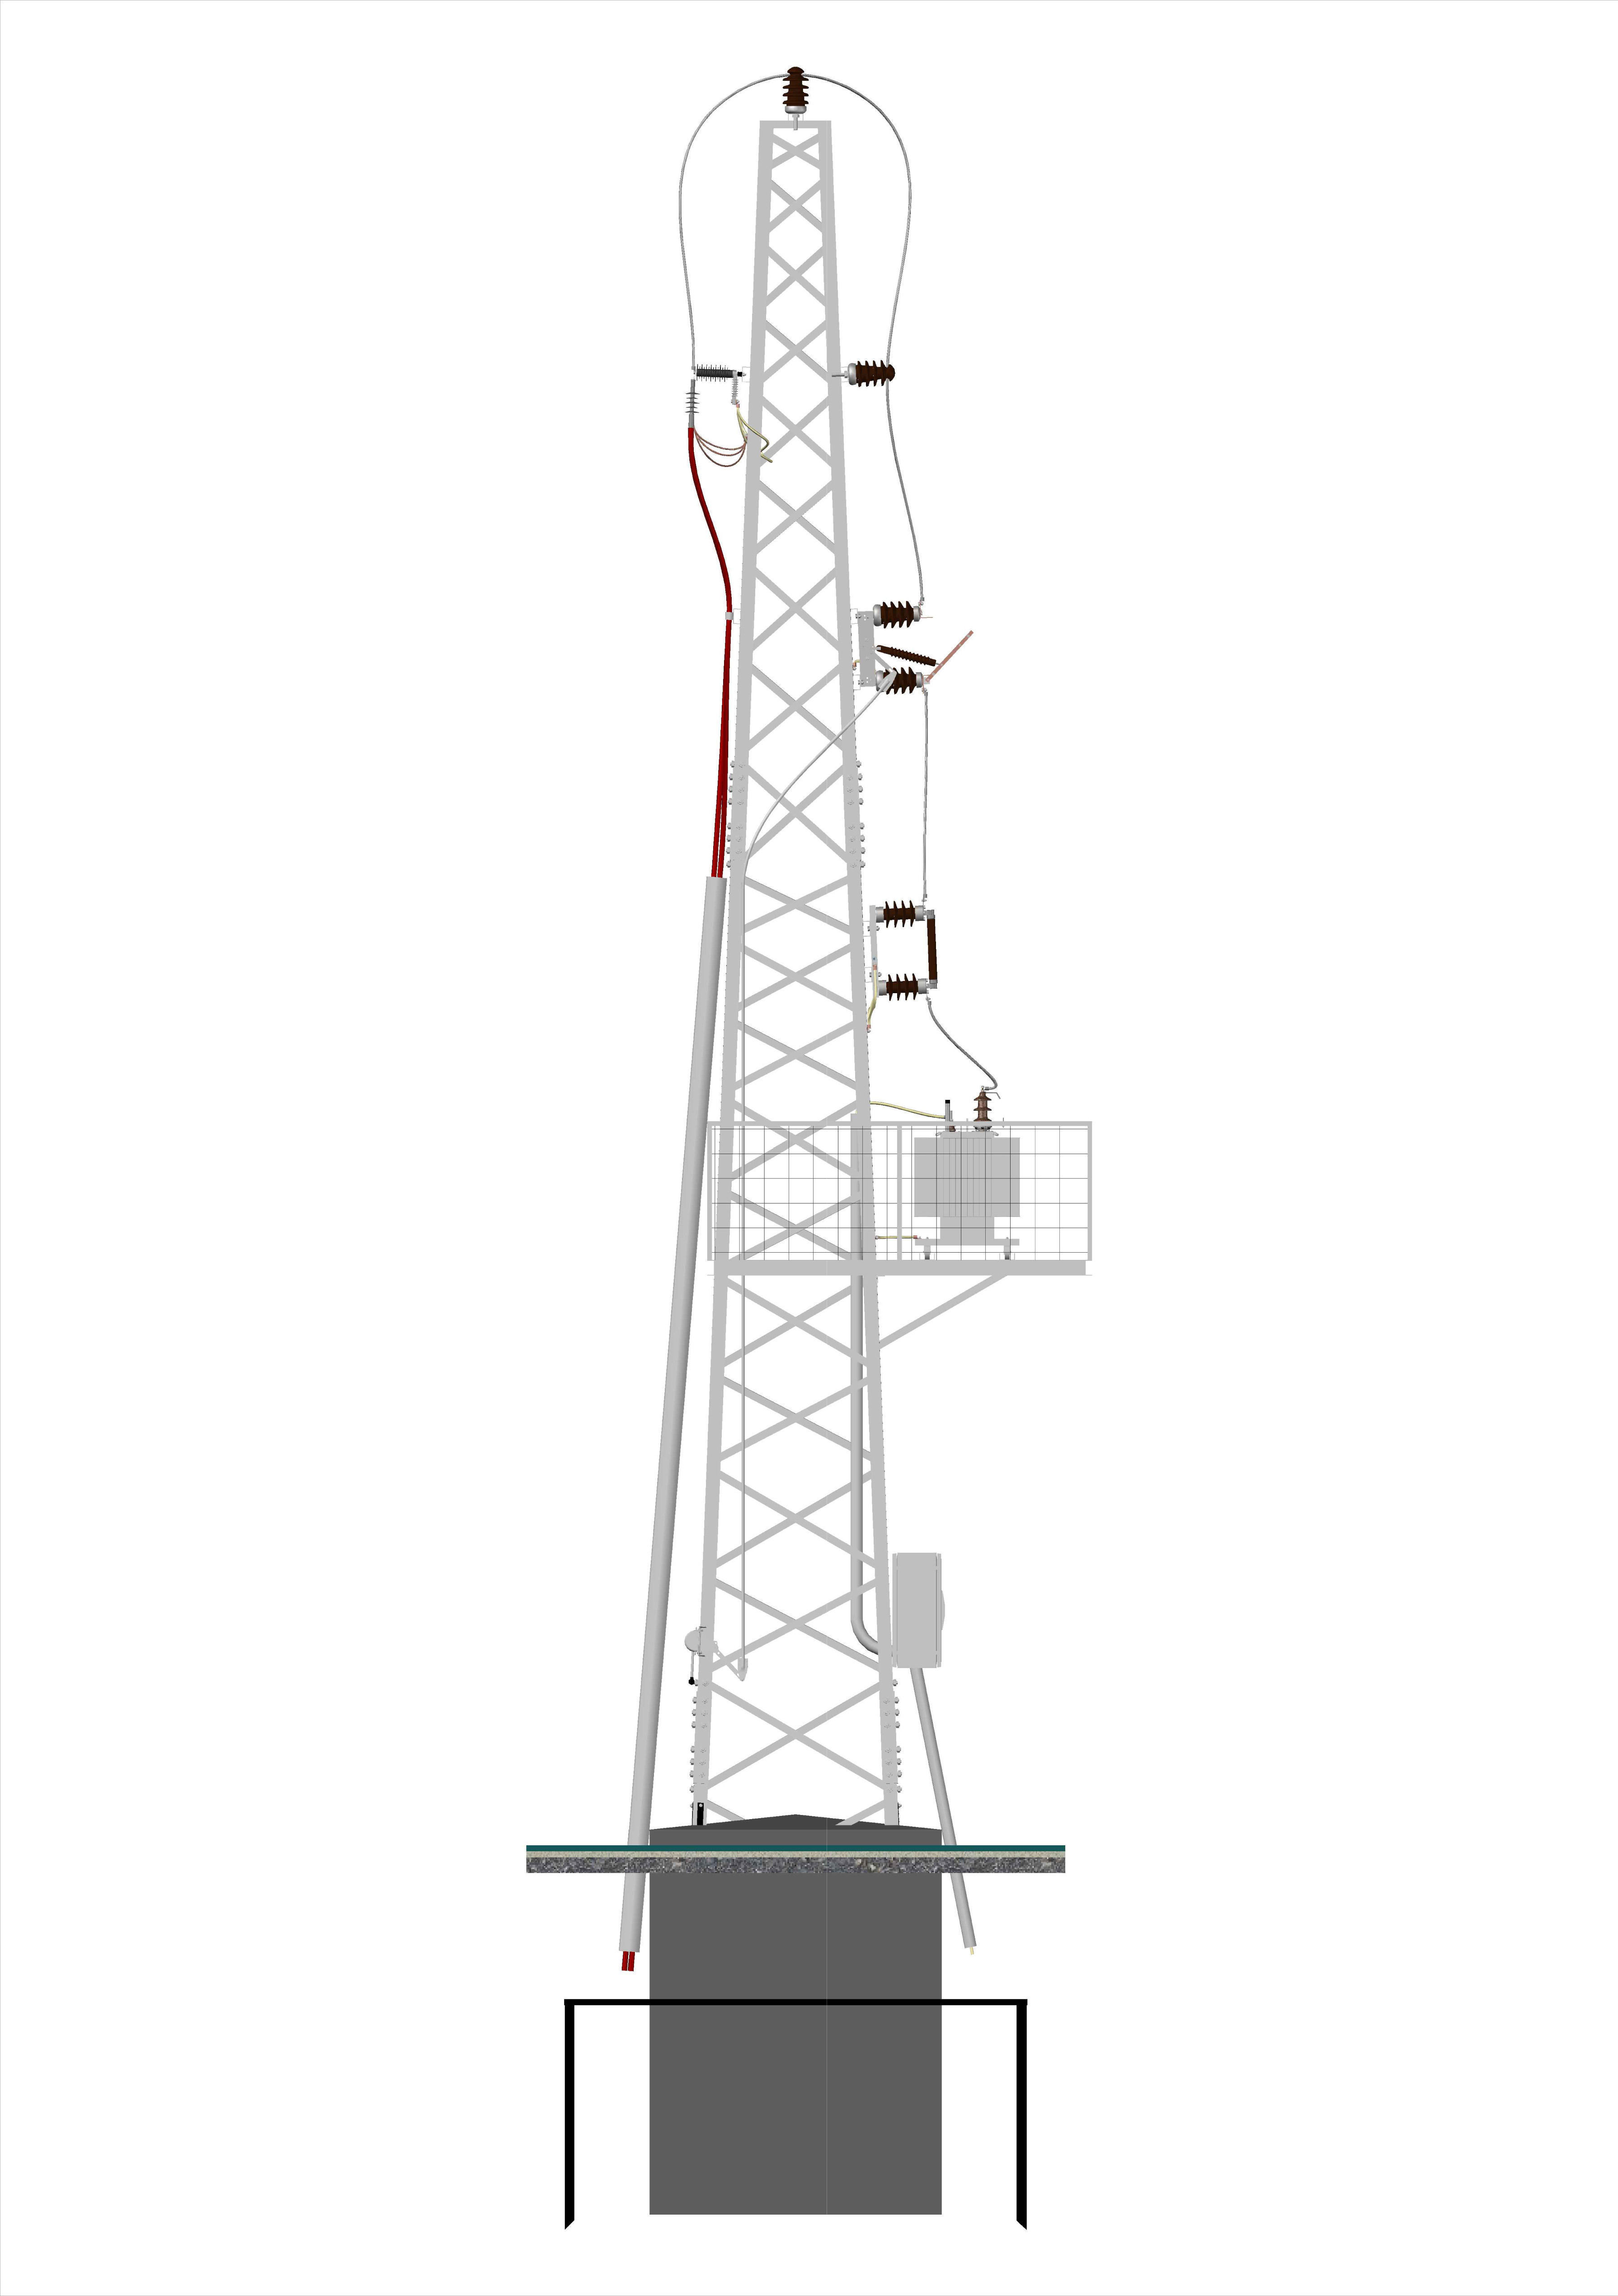 Cable Feeded 952 Tower Transformer Station Free 3d Model